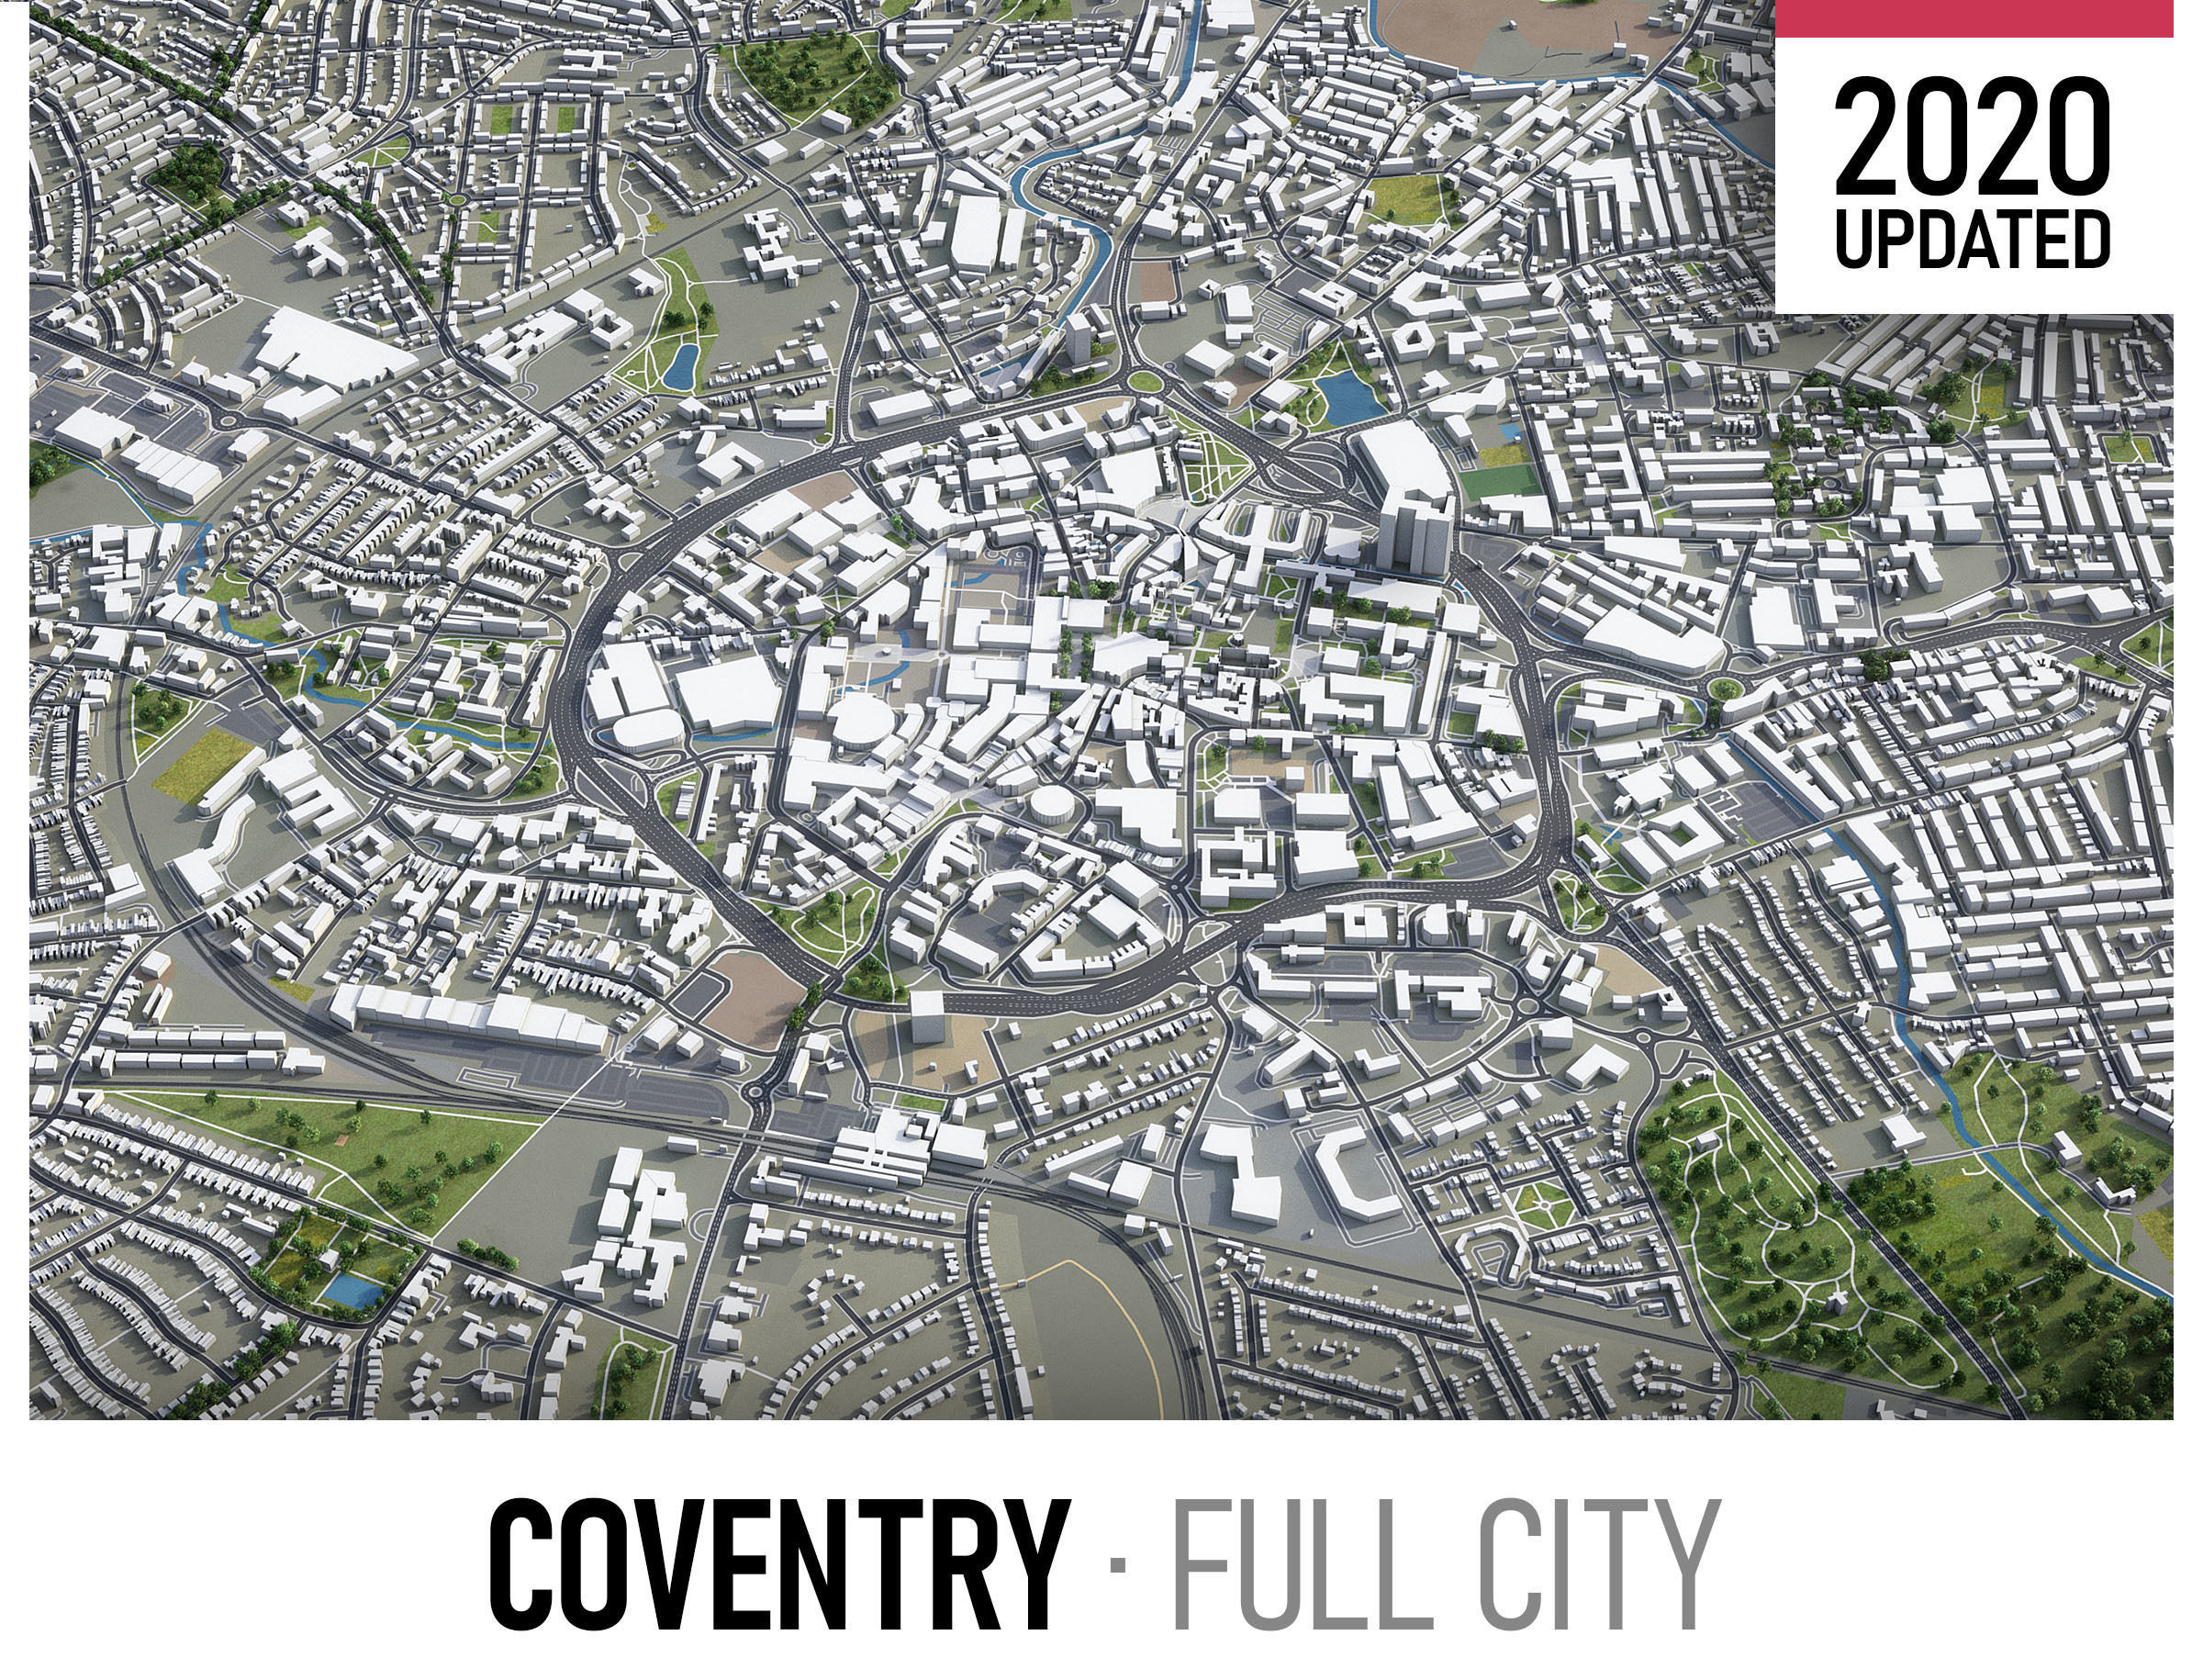 Coventry - city and surroundings